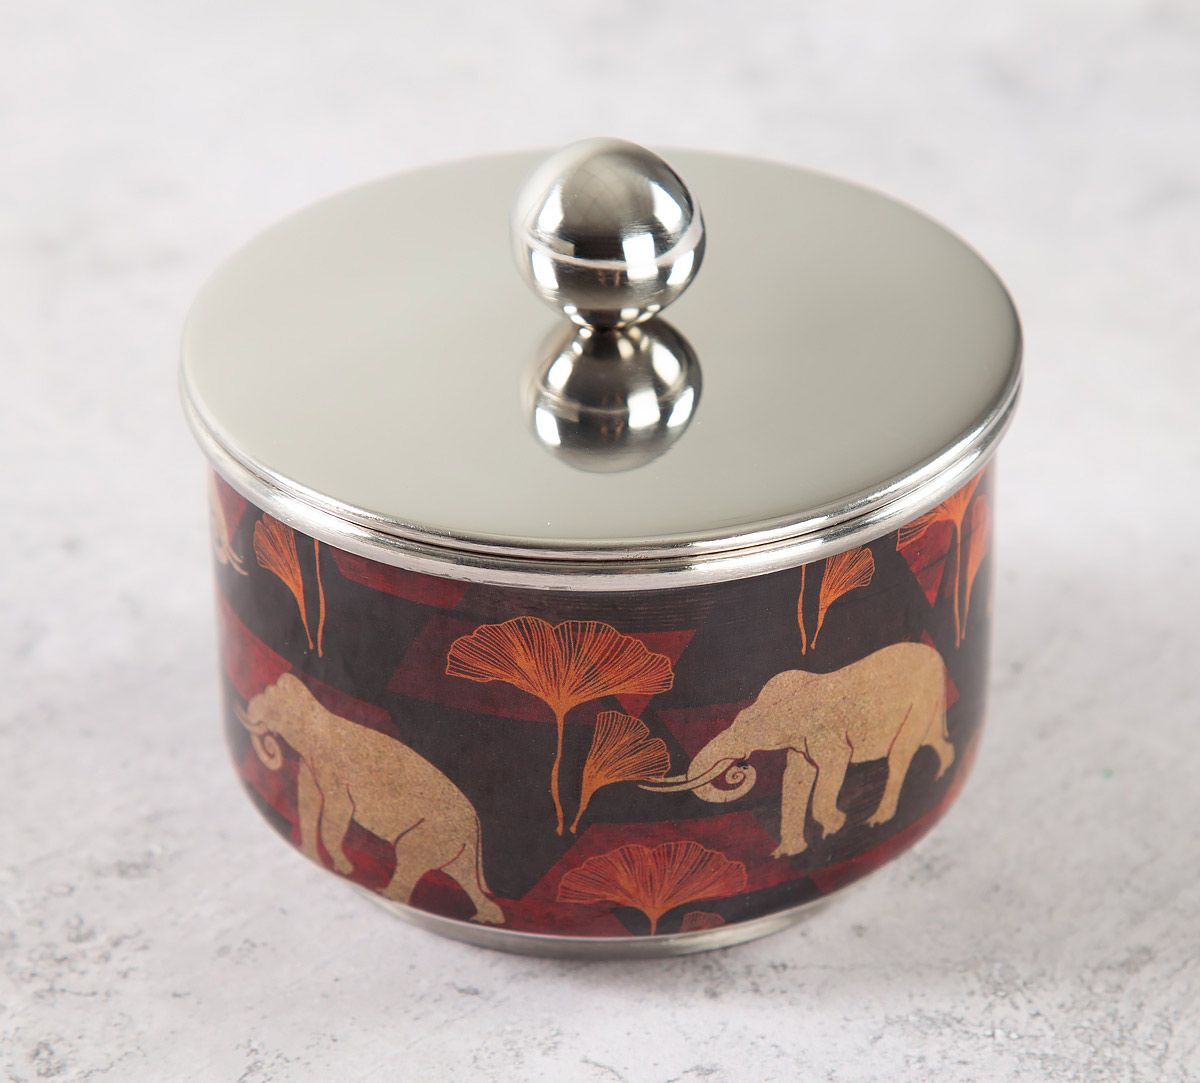 India Circus Gallant Tusker Steel Bowl with Lid